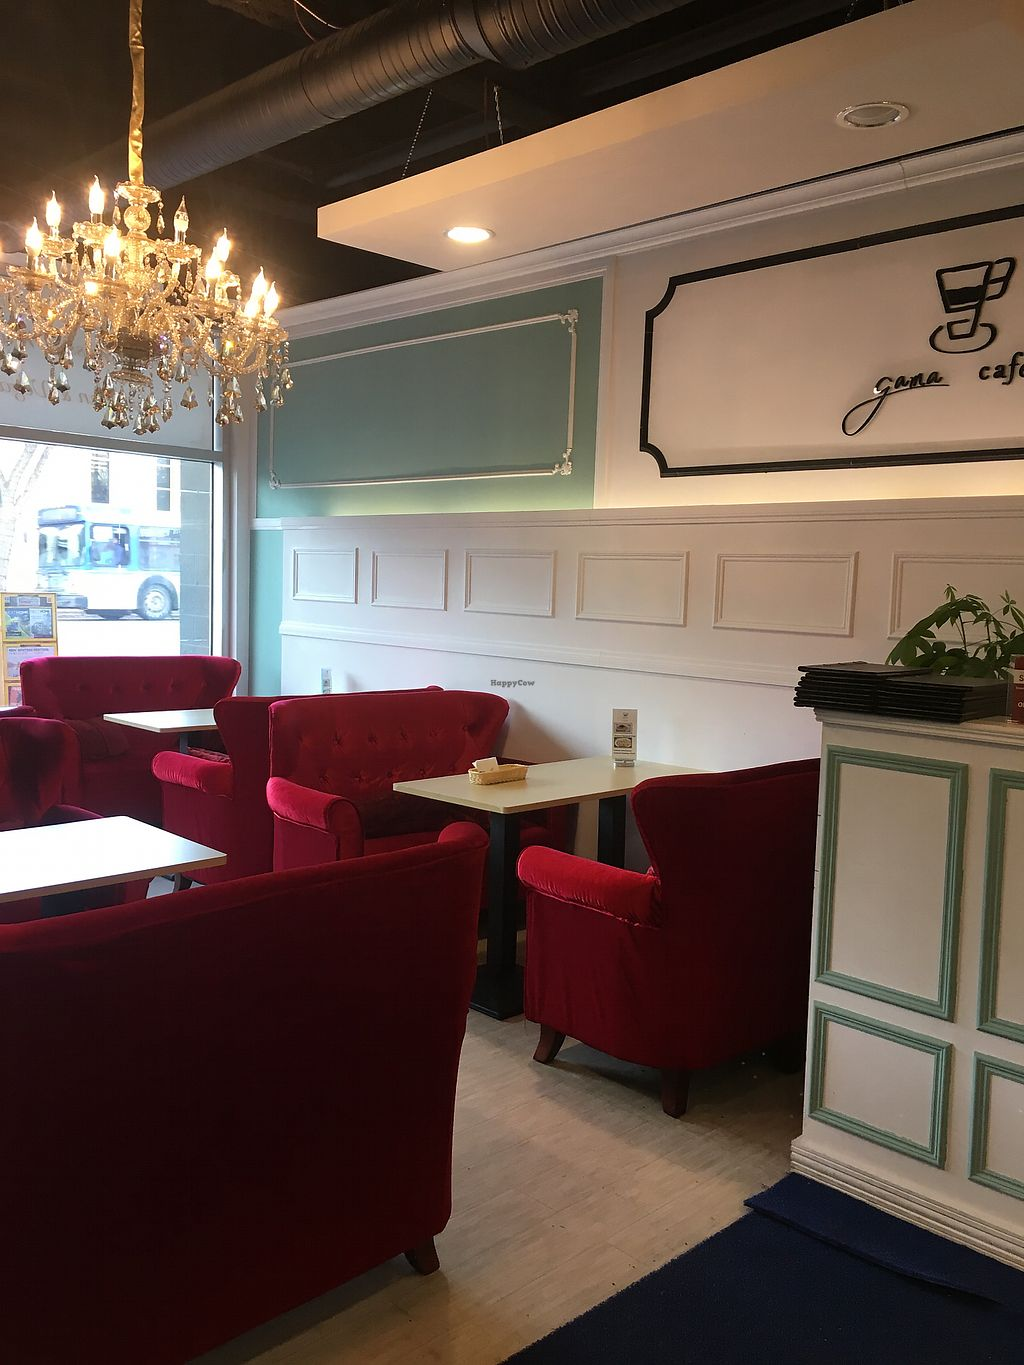 """Photo of Gama Cafe  by <a href=""""/members/profile/loopyandlumpy"""">loopyandlumpy</a> <br/>Red Velvet <br/> January 18, 2018  - <a href='/contact/abuse/image/59270/348089'>Report</a>"""